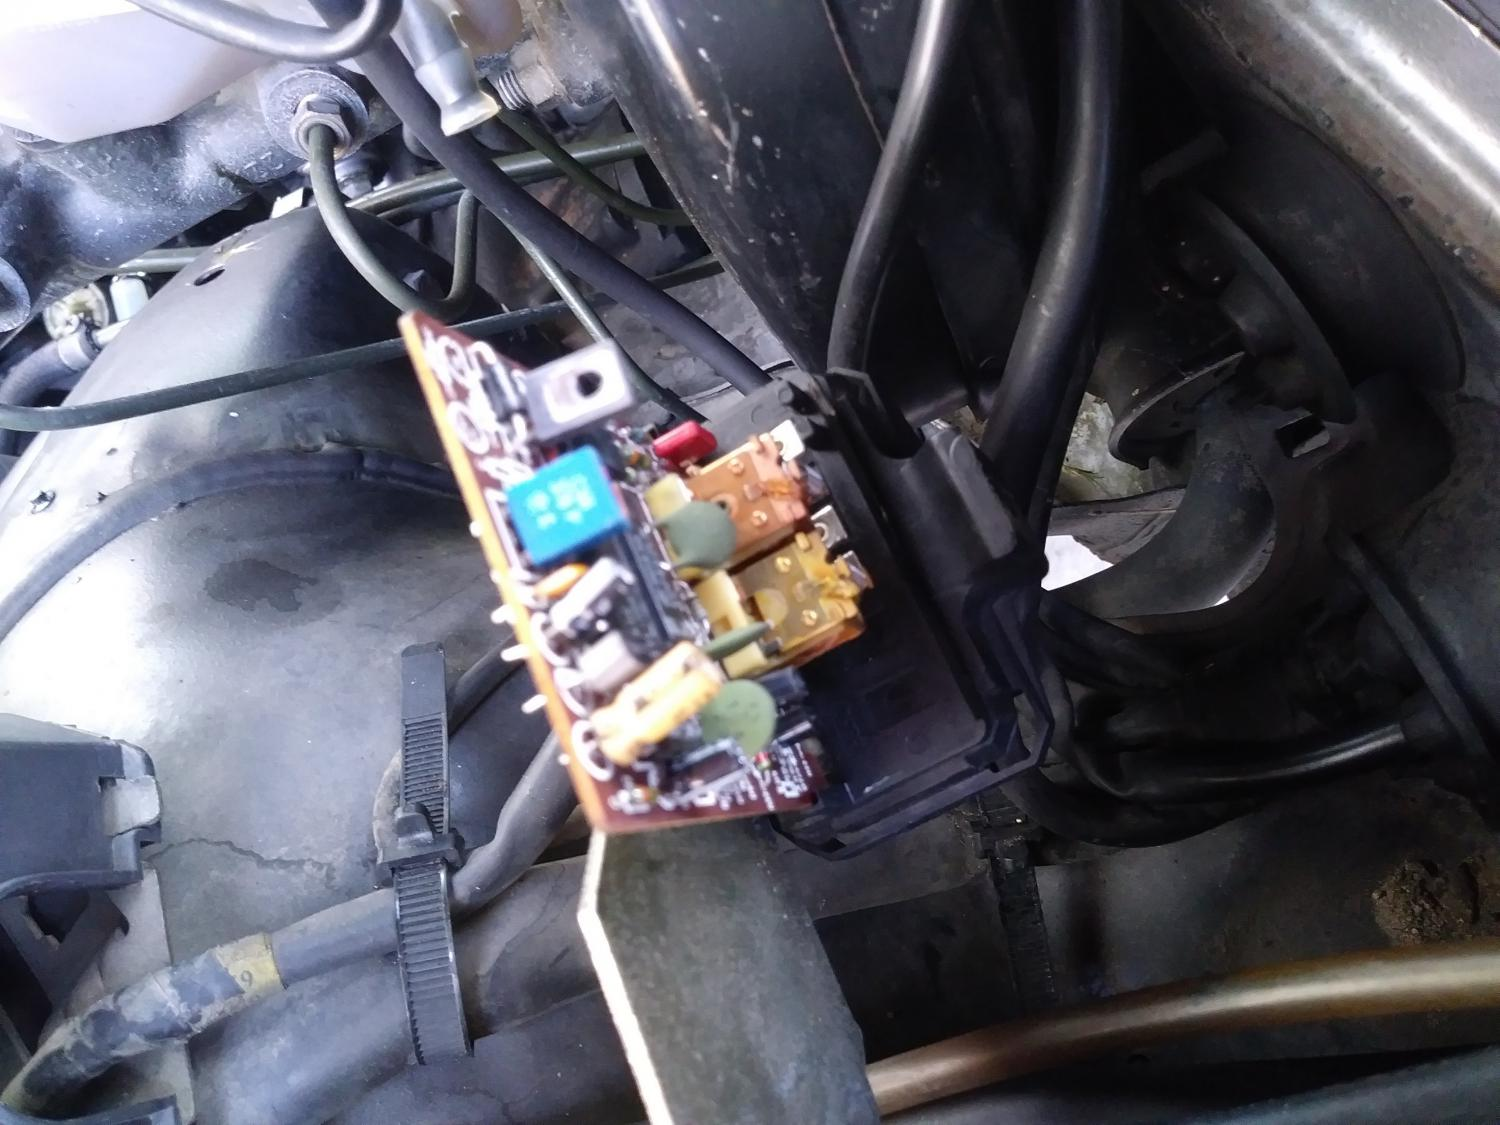 1985 300D Klima and fuse box woes-0414181451.jpg ...